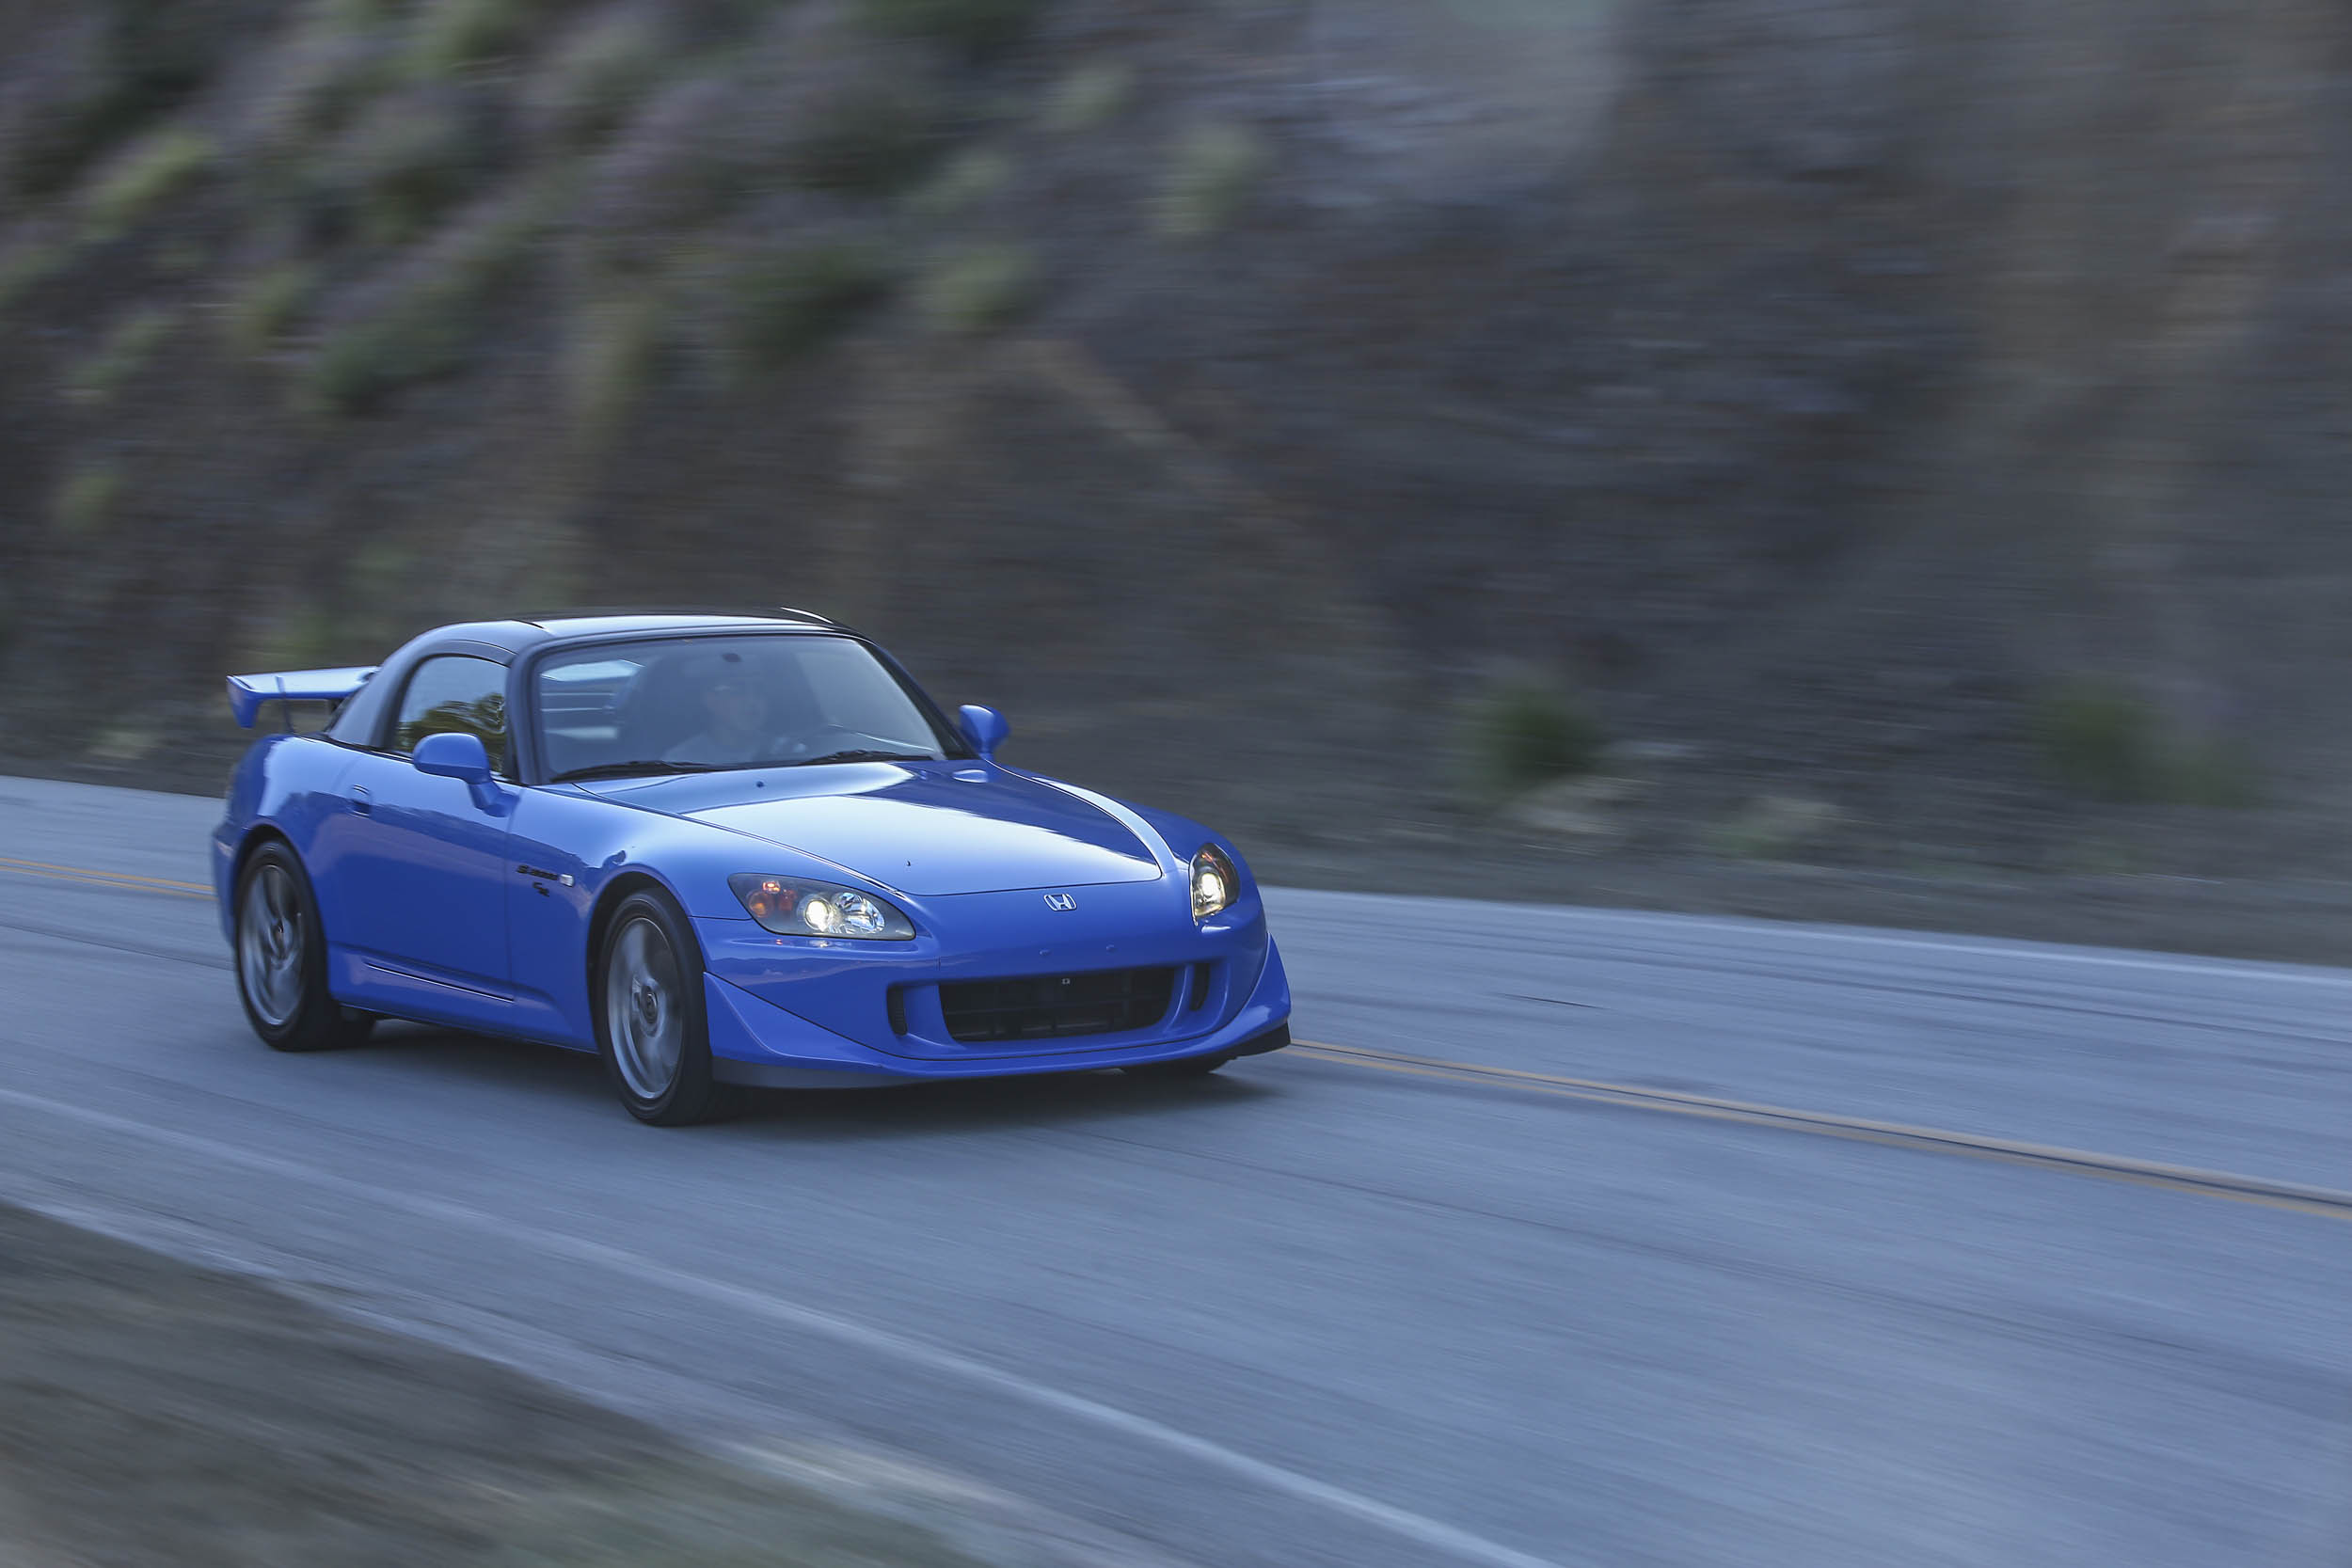 Honda S2000 on road